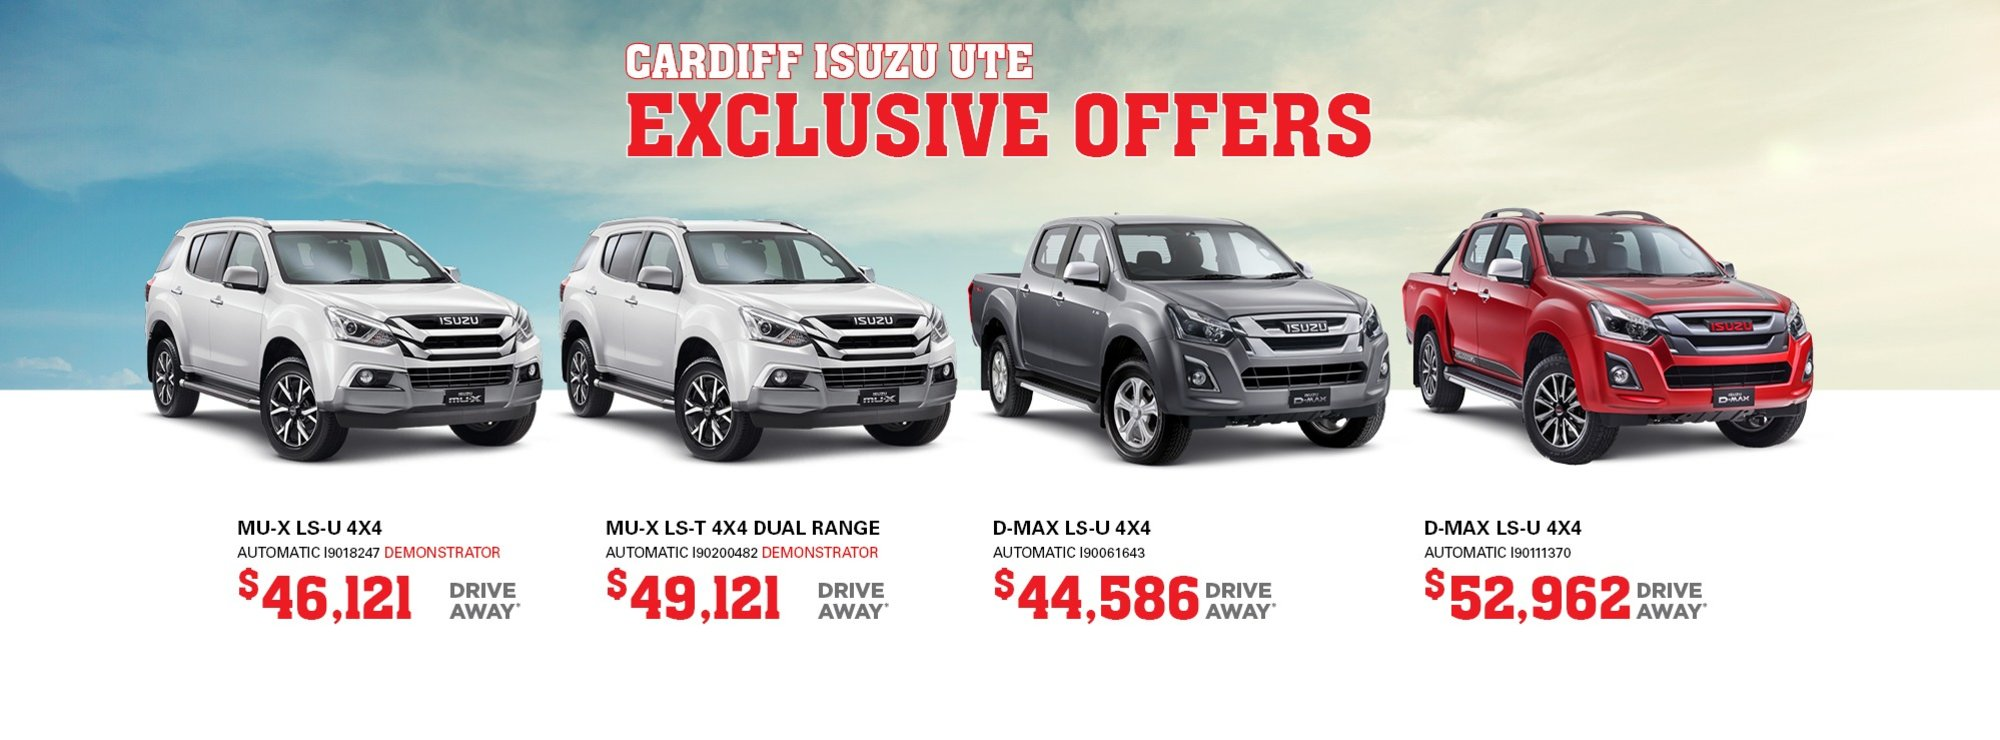 cardiff isuzu ute exclusive offers